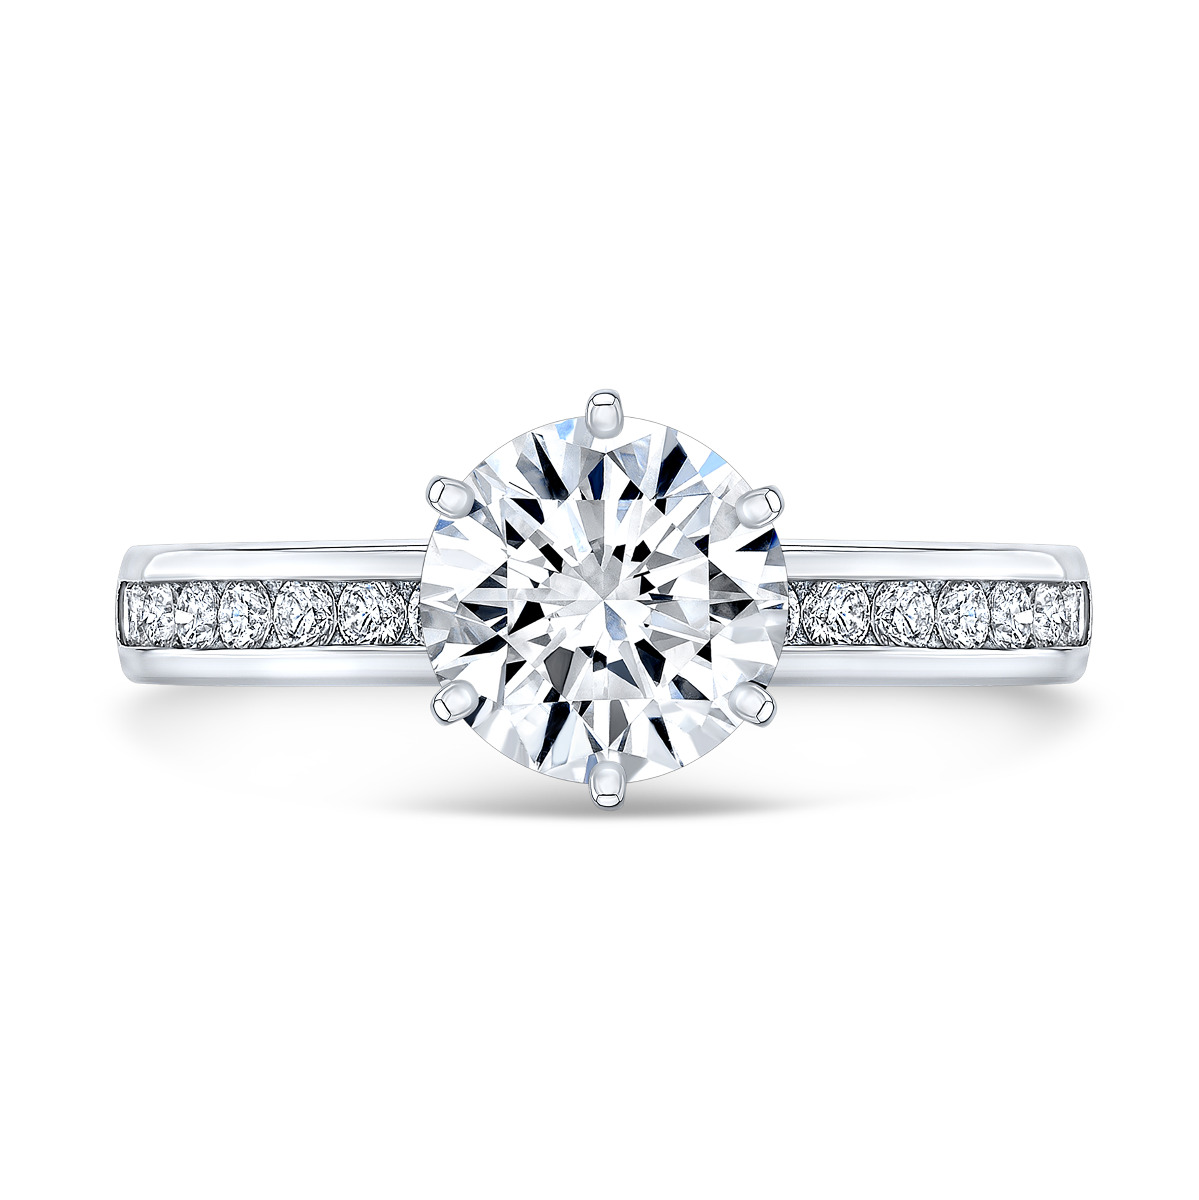 6 Prong Channel Set Diamond Engagement Ring